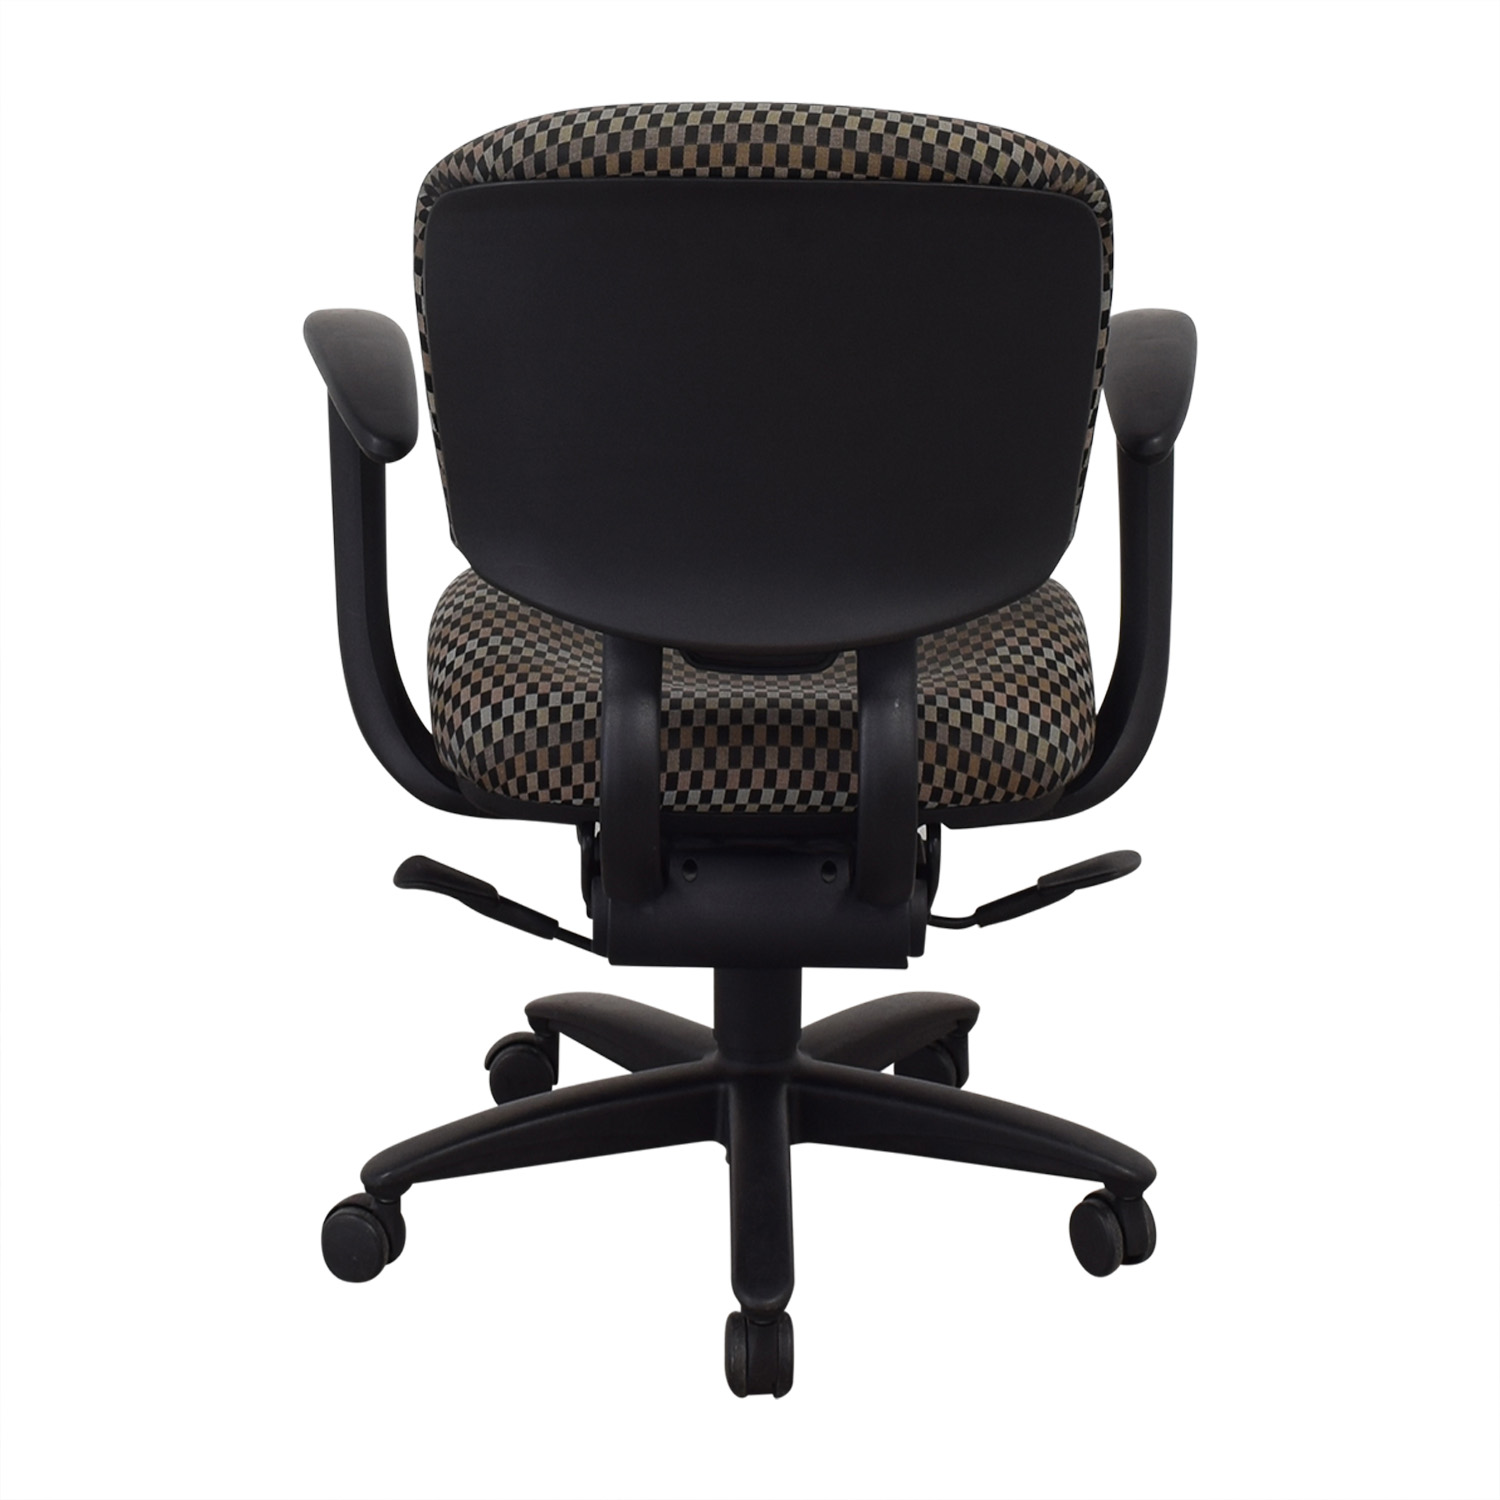 Haworth Haworth Improv Office Desk Chair